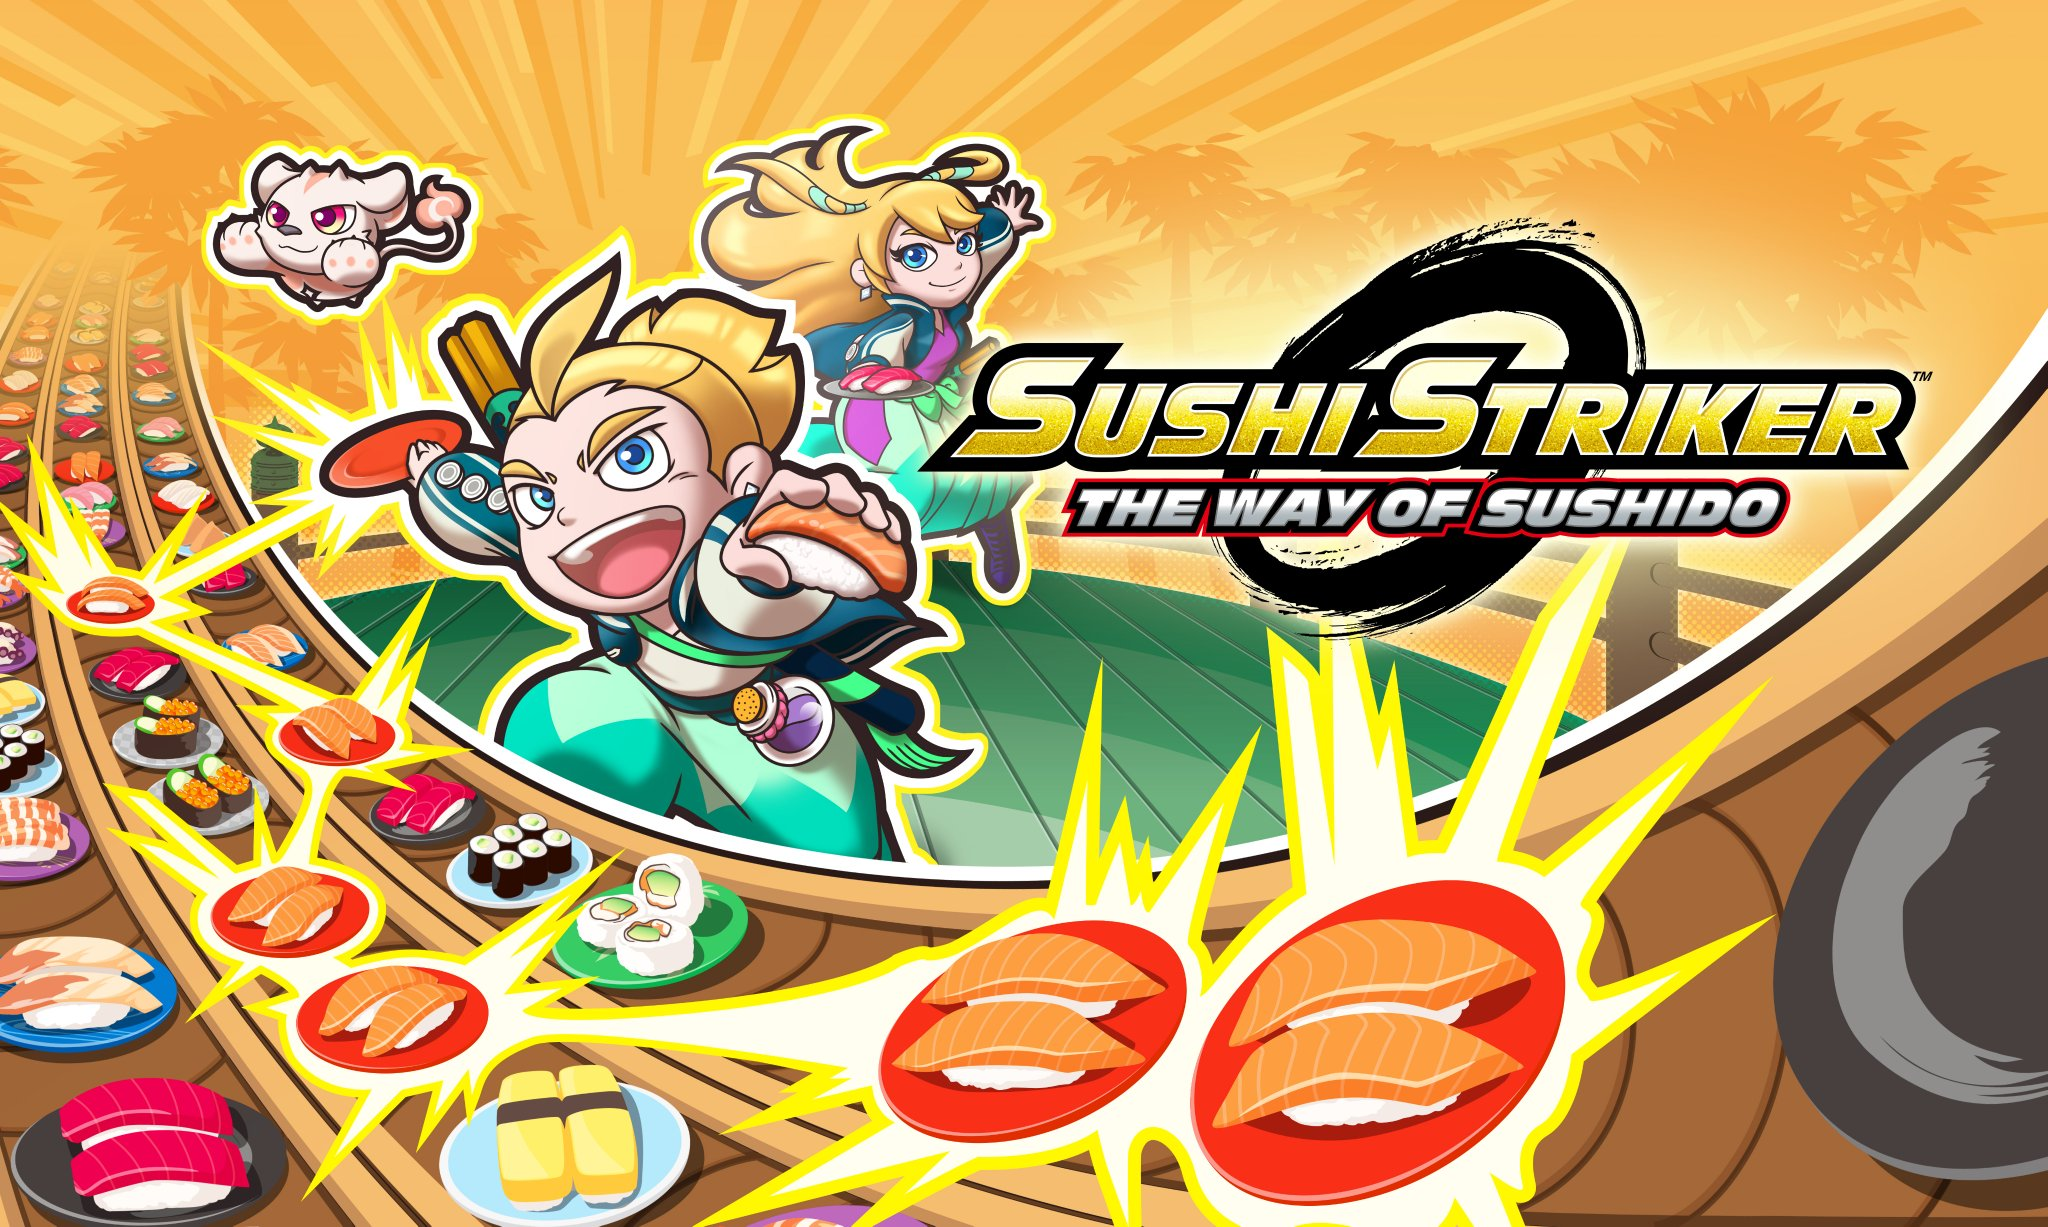 sushi-strikers-the-way-of-sushido-llegara-occidente-nintendo-3ds-switch